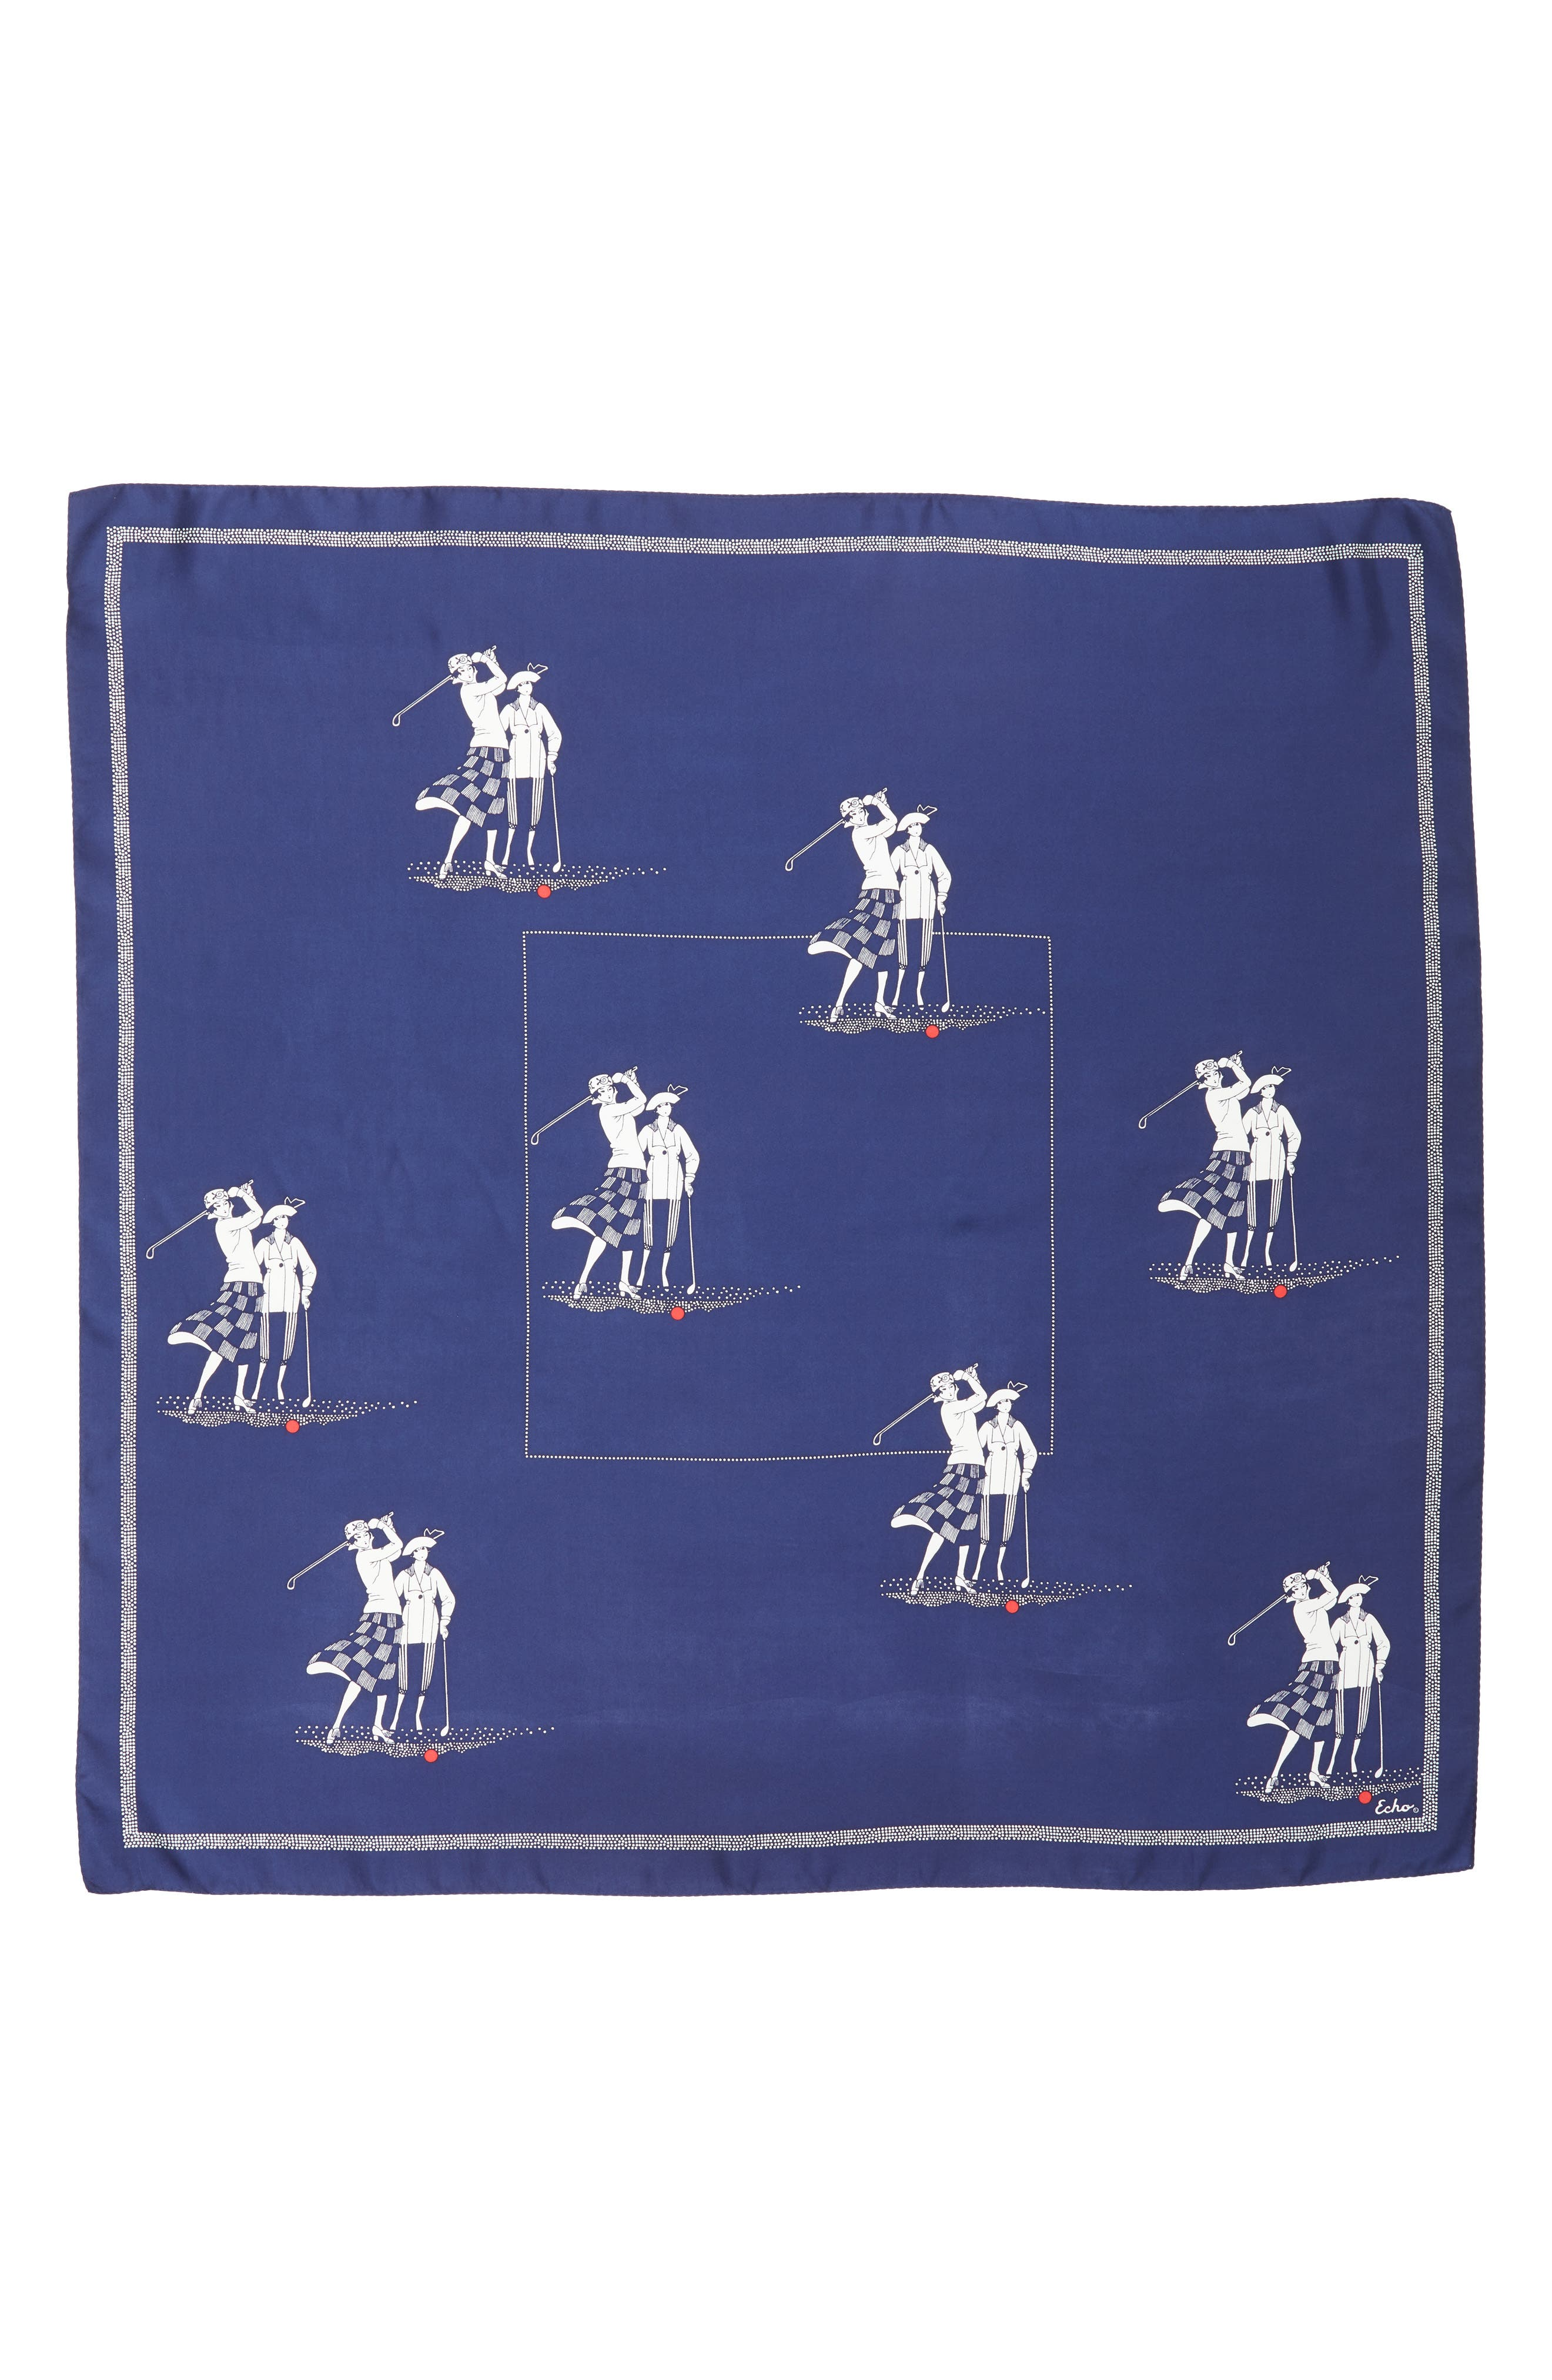 Golf Day Square Silk Scarf,                             Alternate thumbnail 3, color,                             MARITIME NAVY